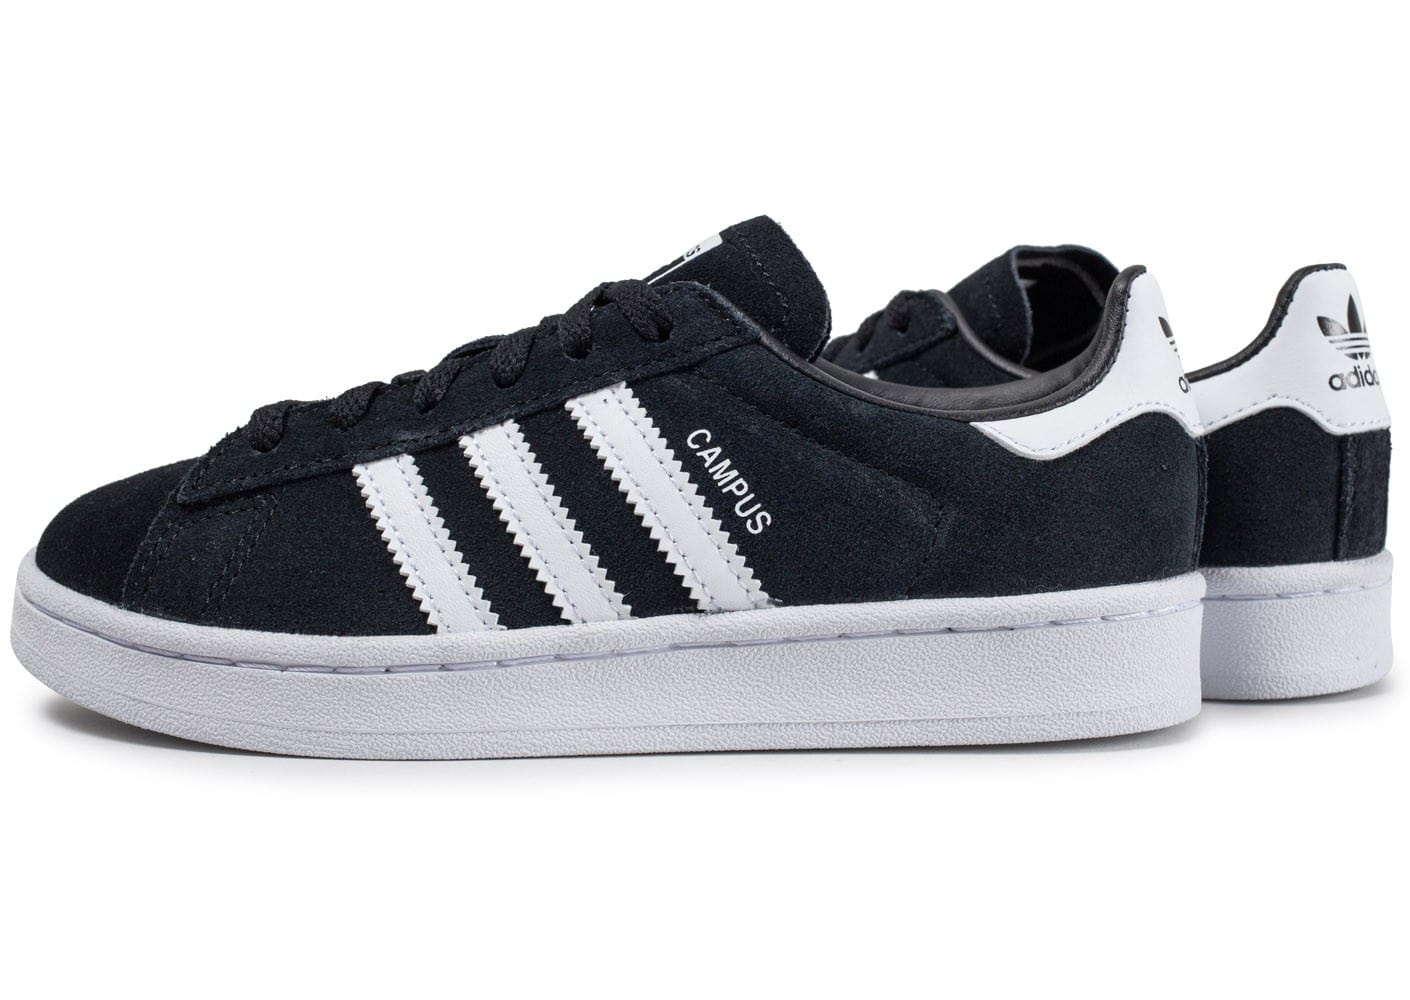 adidas campus enfant noire chaussures adidas chausport. Black Bedroom Furniture Sets. Home Design Ideas